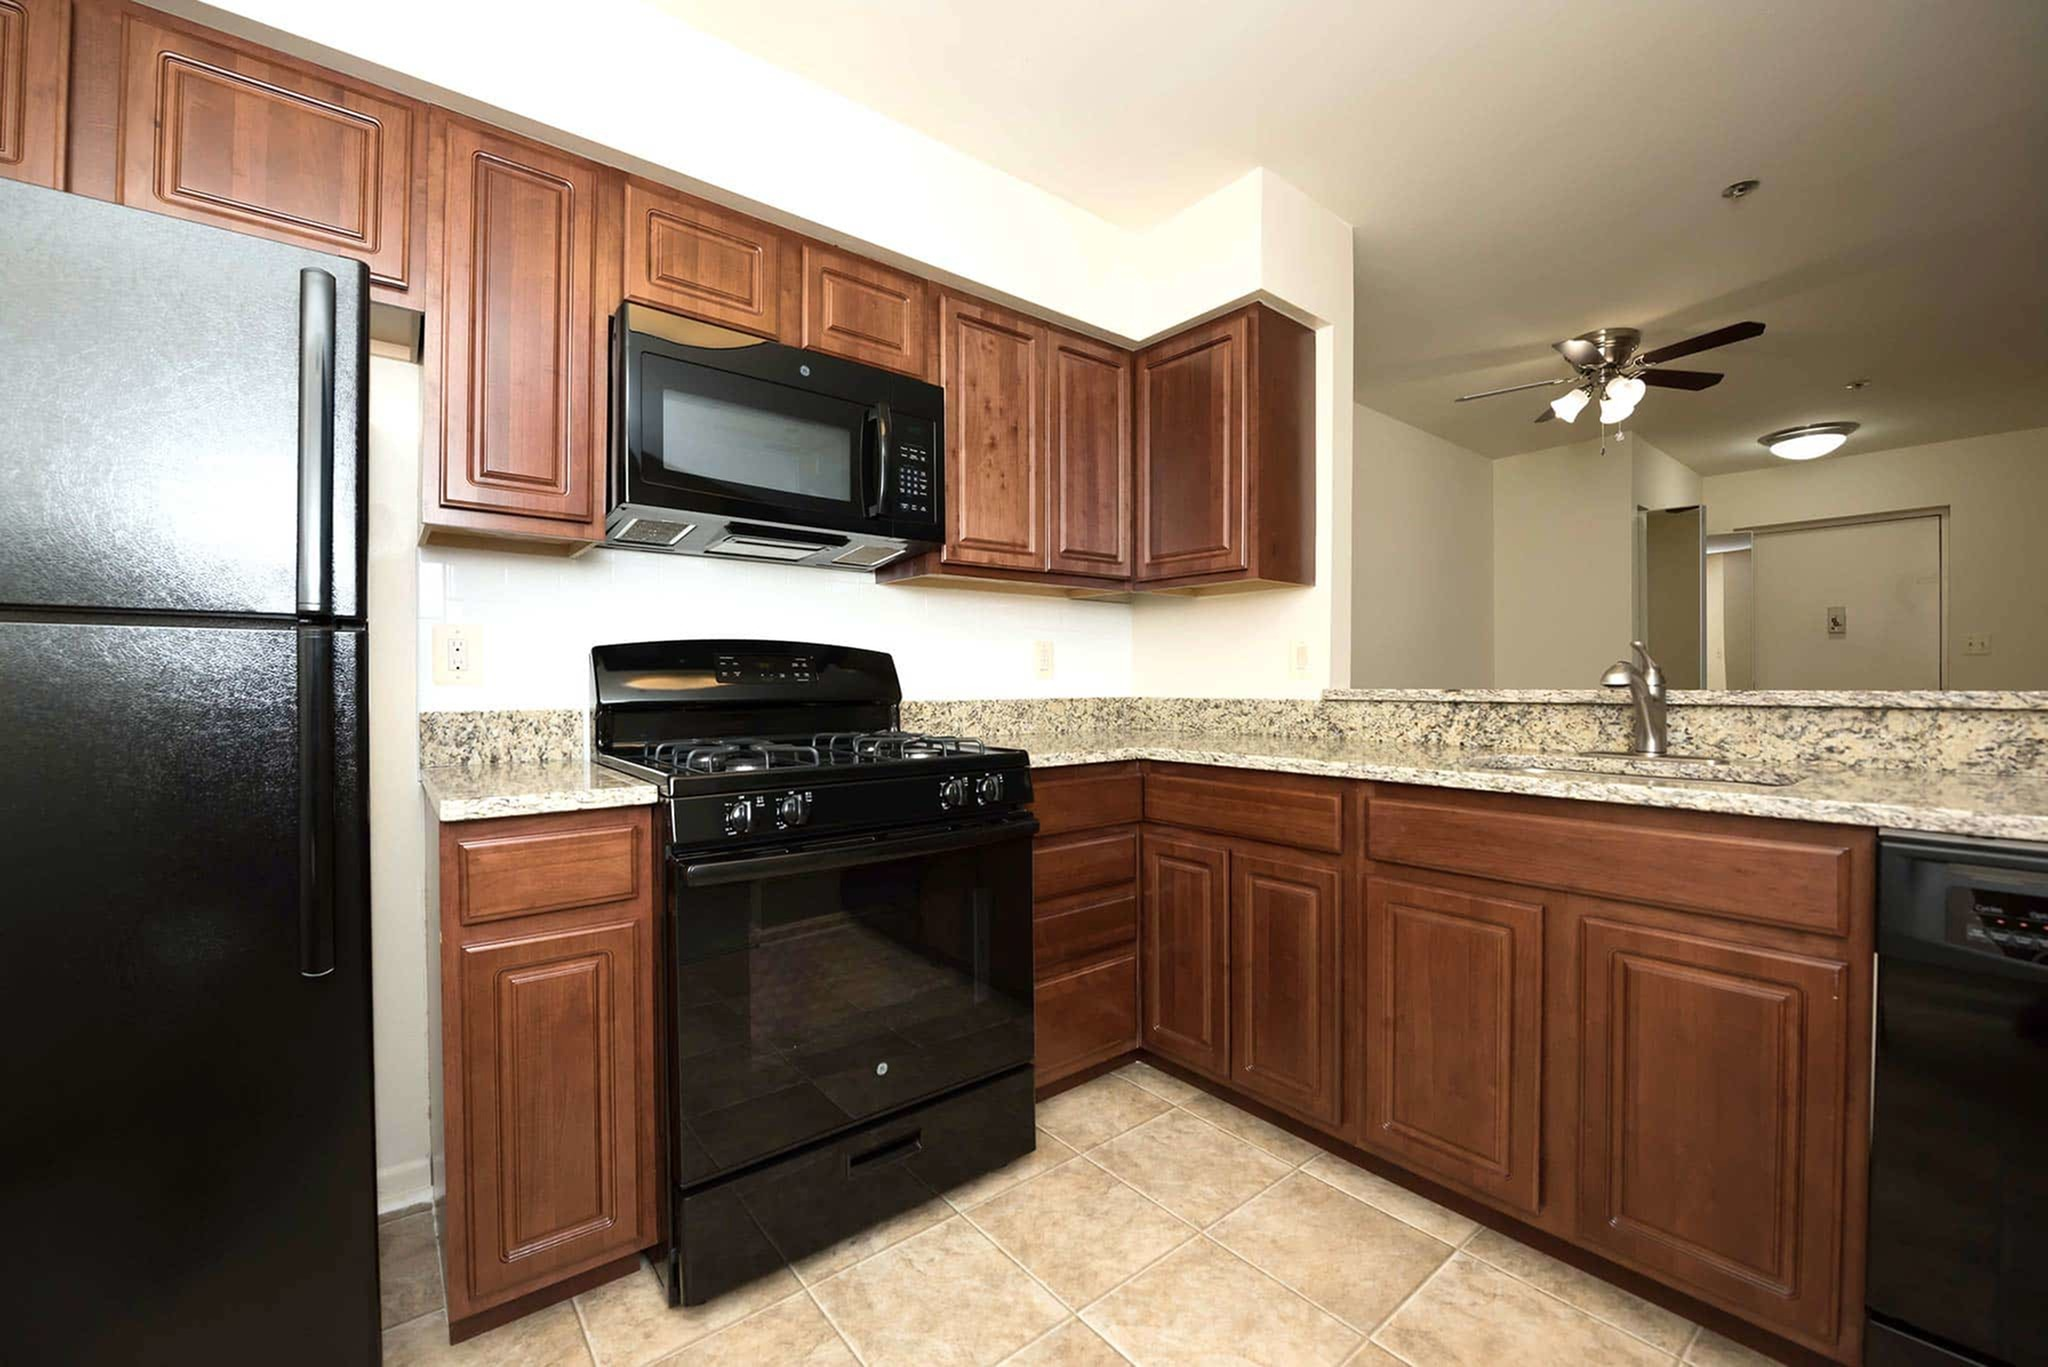 Beautiful kitchen with dark wooden cabinets and hard floors in Yorkshire Apartments in Silver Spring, MD